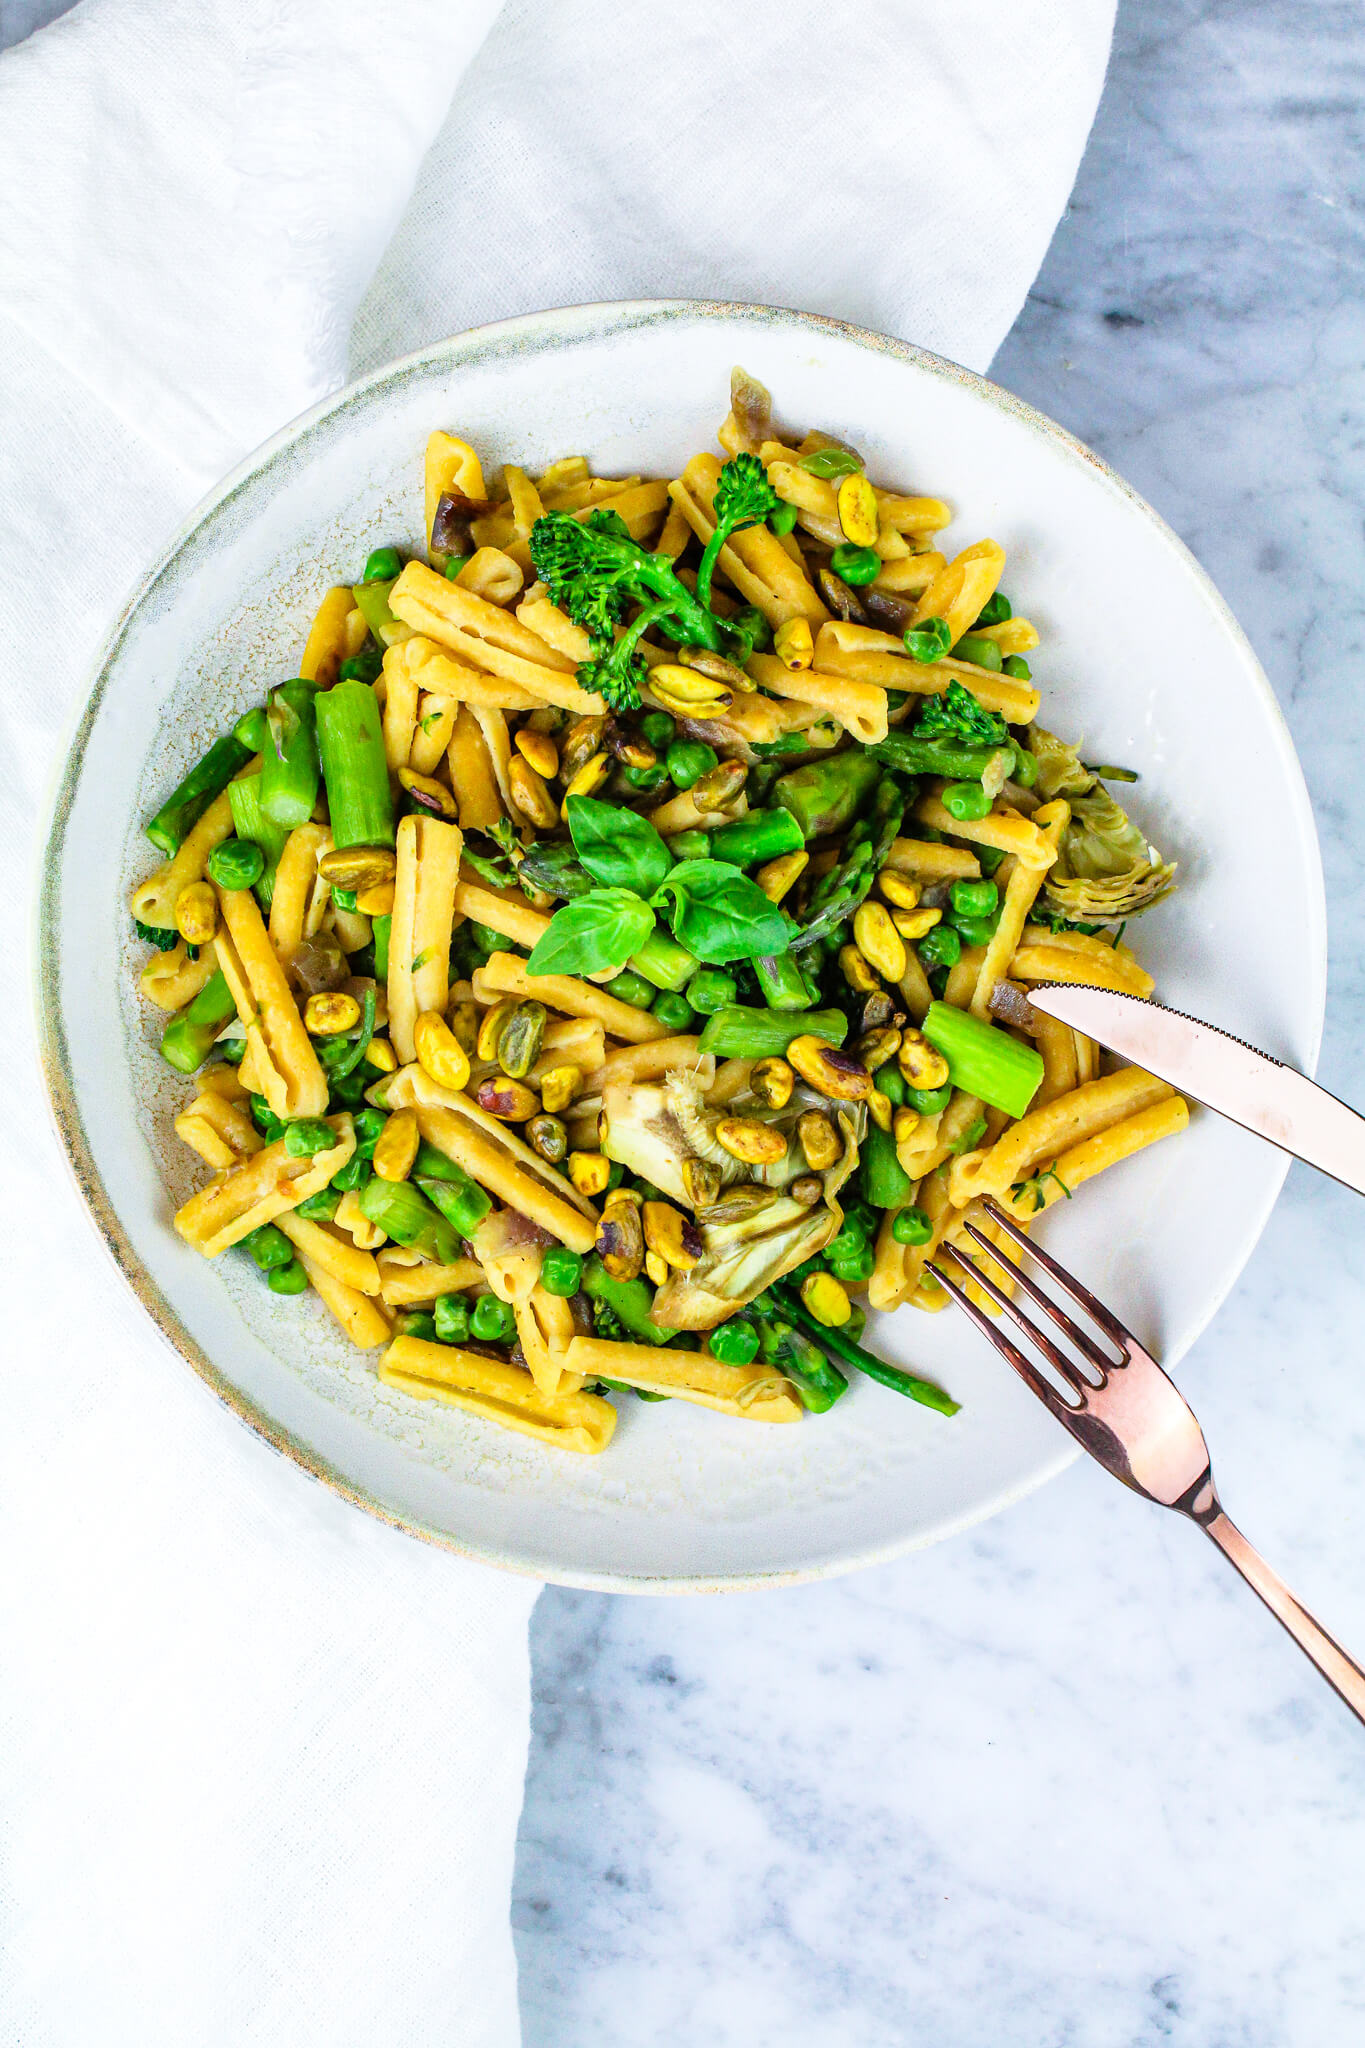 Sustainable and Plant-based Lifestyle influencer shares her delicious Spring Pasta Bowl recipe!